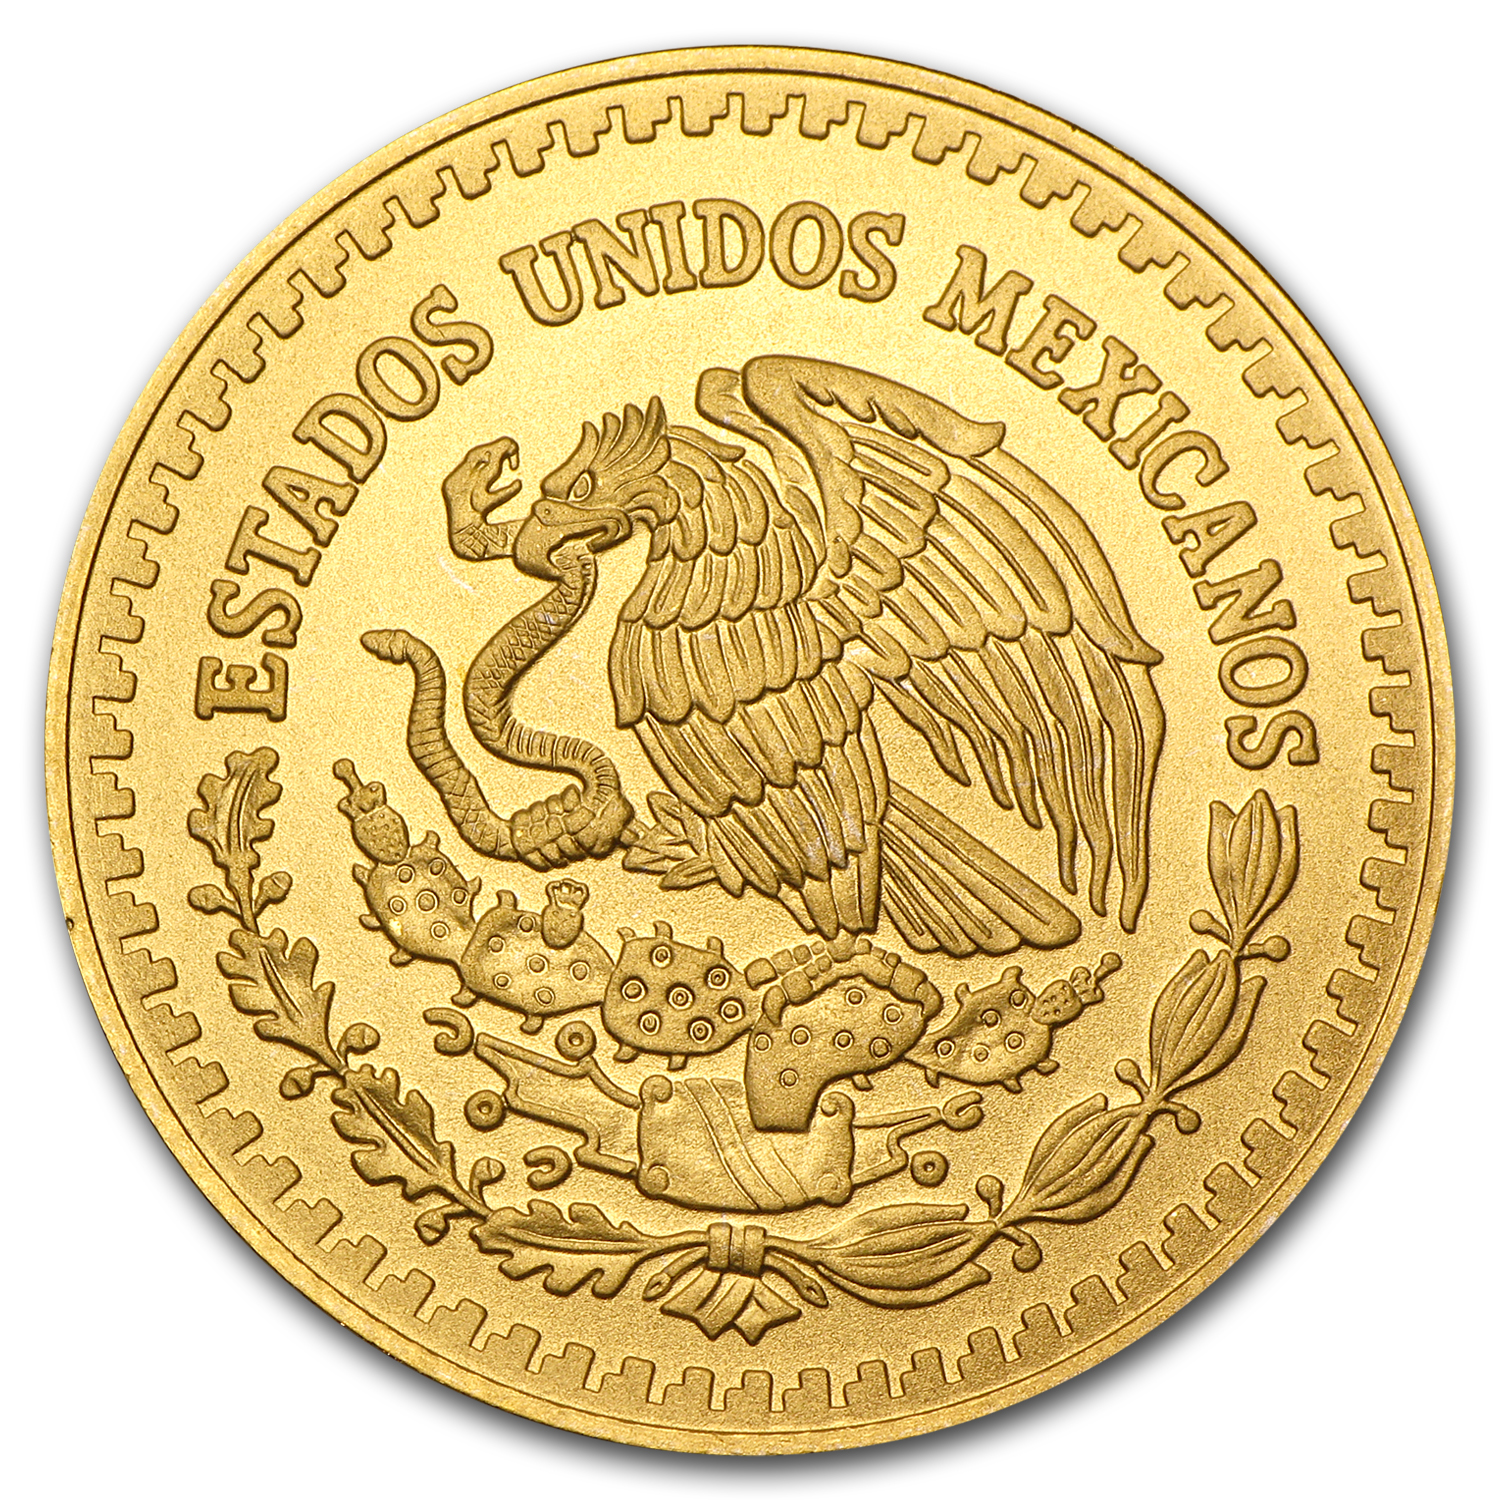 2013 1/2 oz Gold Mexican Libertad BU